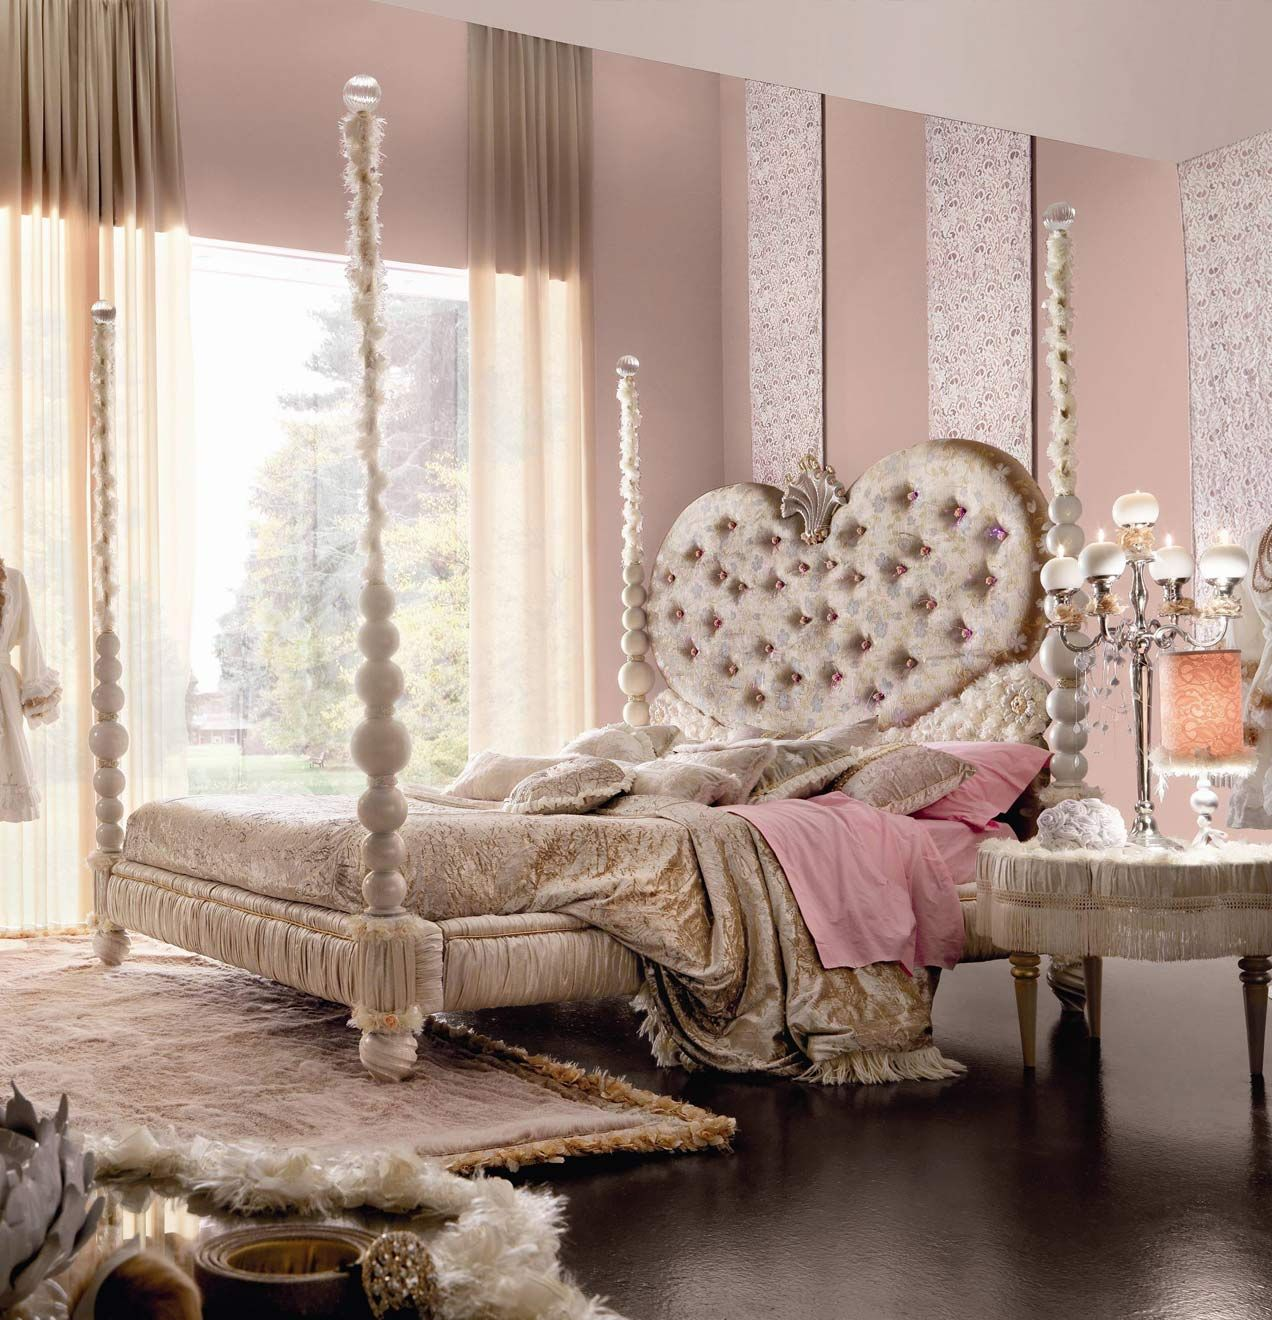 Pin on Beautiful and or Creative Bedrooms